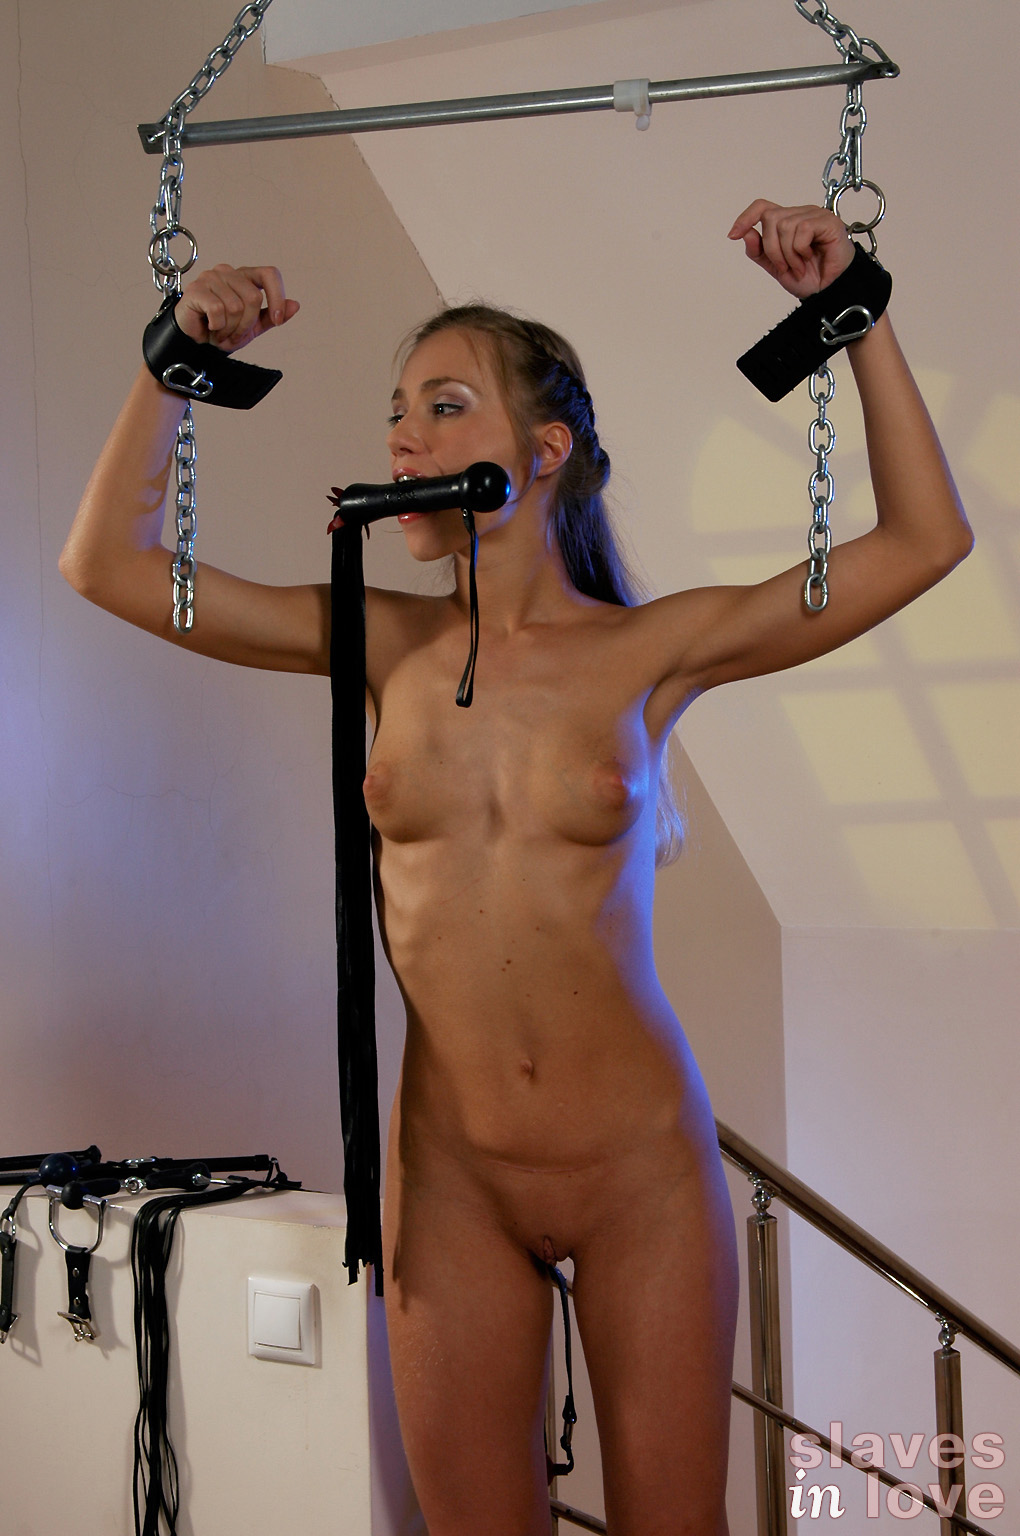 Slave Jt: Happy to be the slave